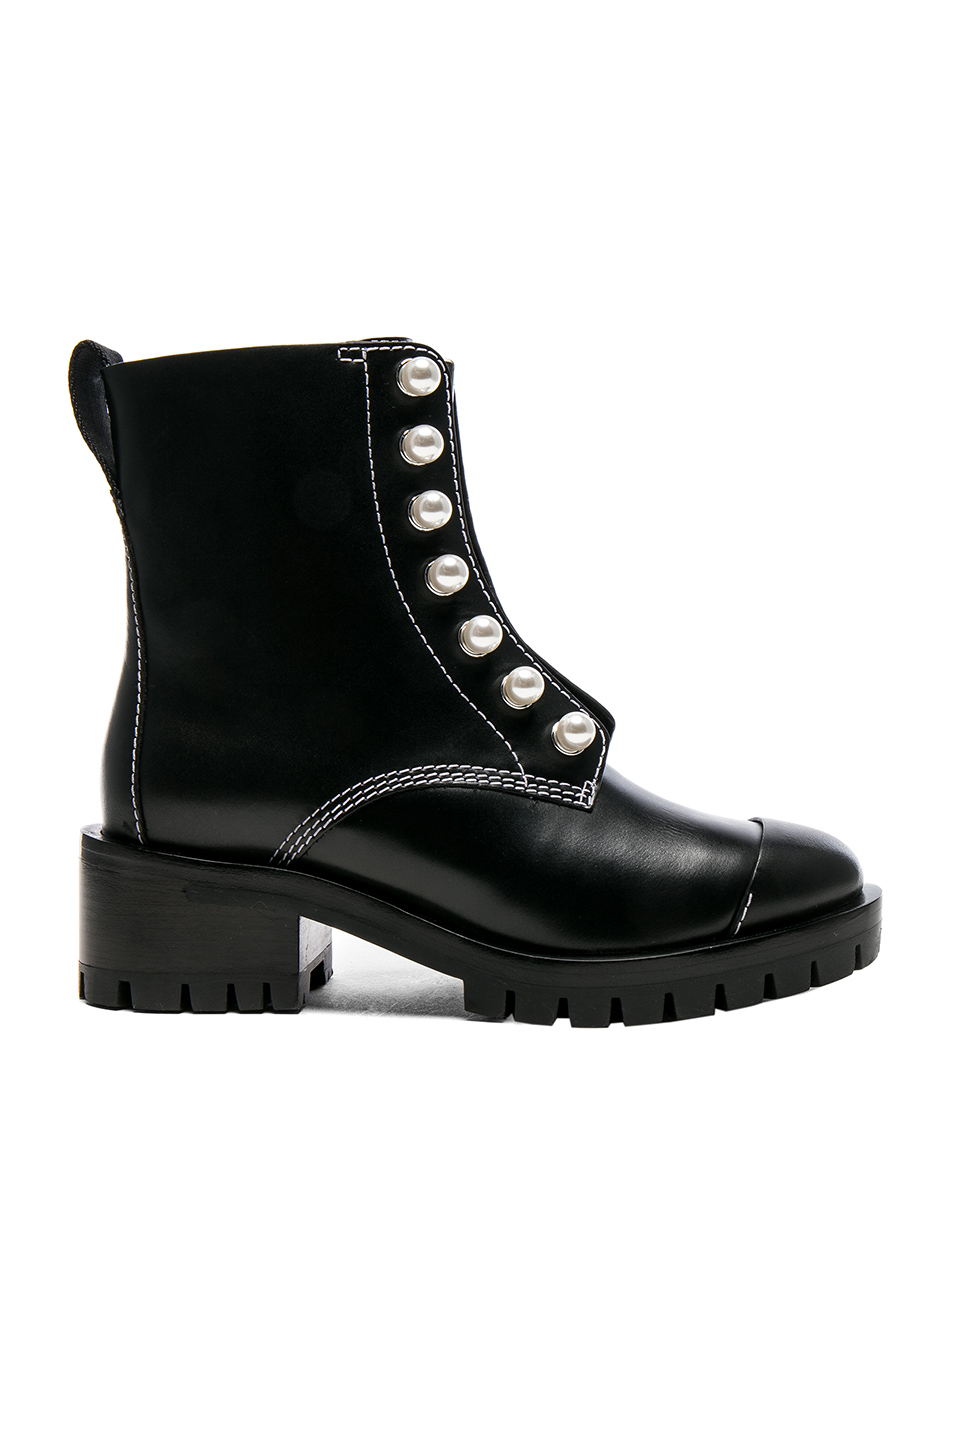 3.1 phillip lim Lug Sole Zipper Leather Boots with Pearls in Black